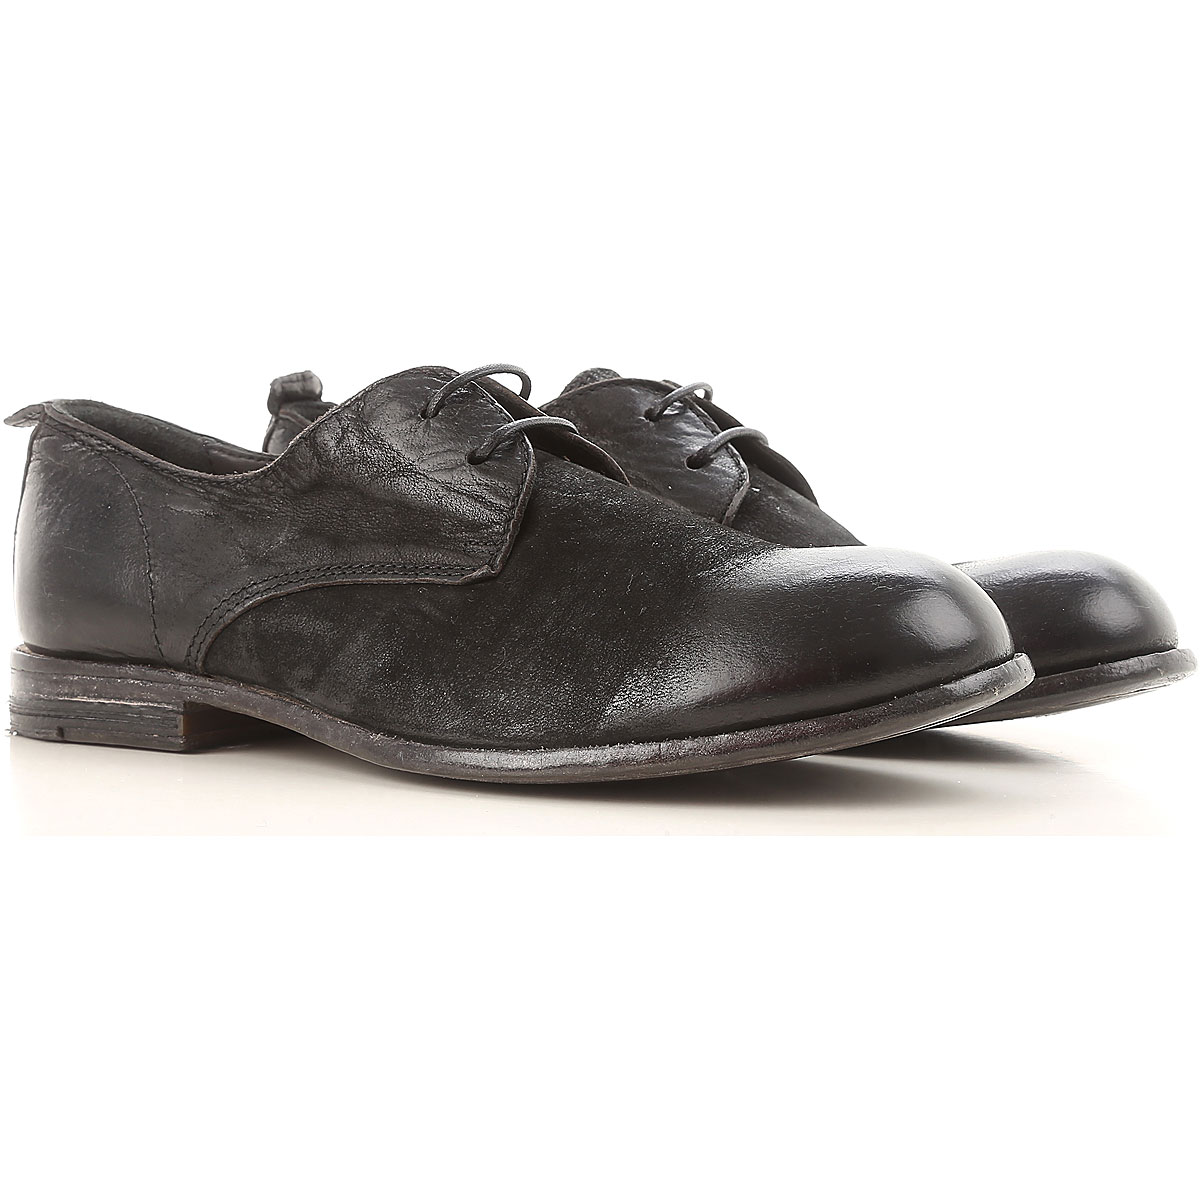 Image of Moma Womens Shoes, Black, Leather, 2017, 10 6 7